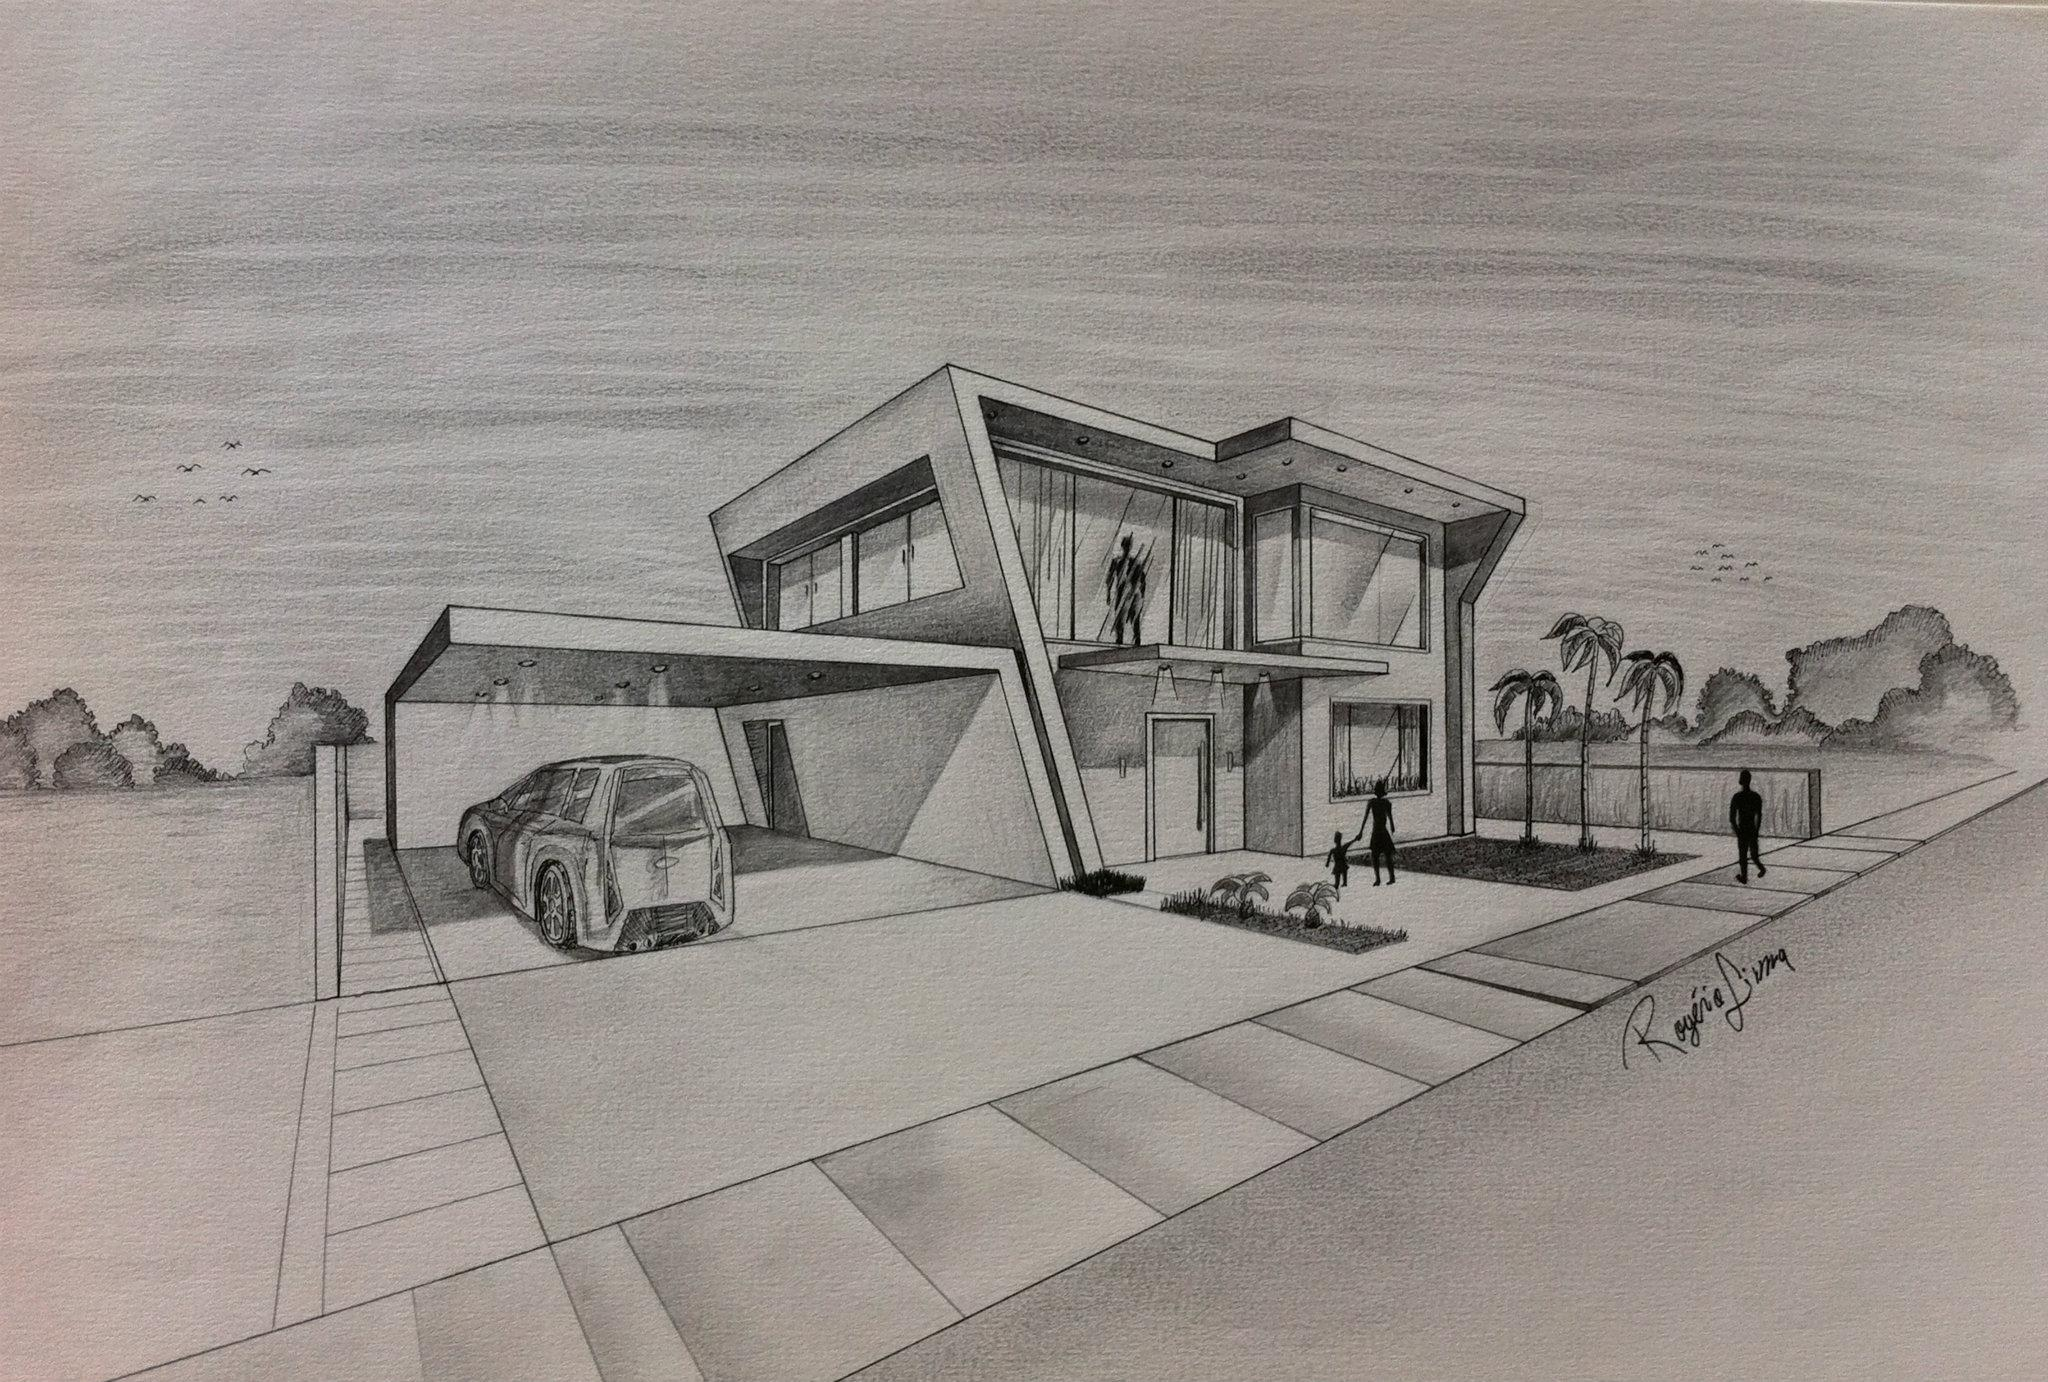 Architect hand drawing at free for for Free online architecture design